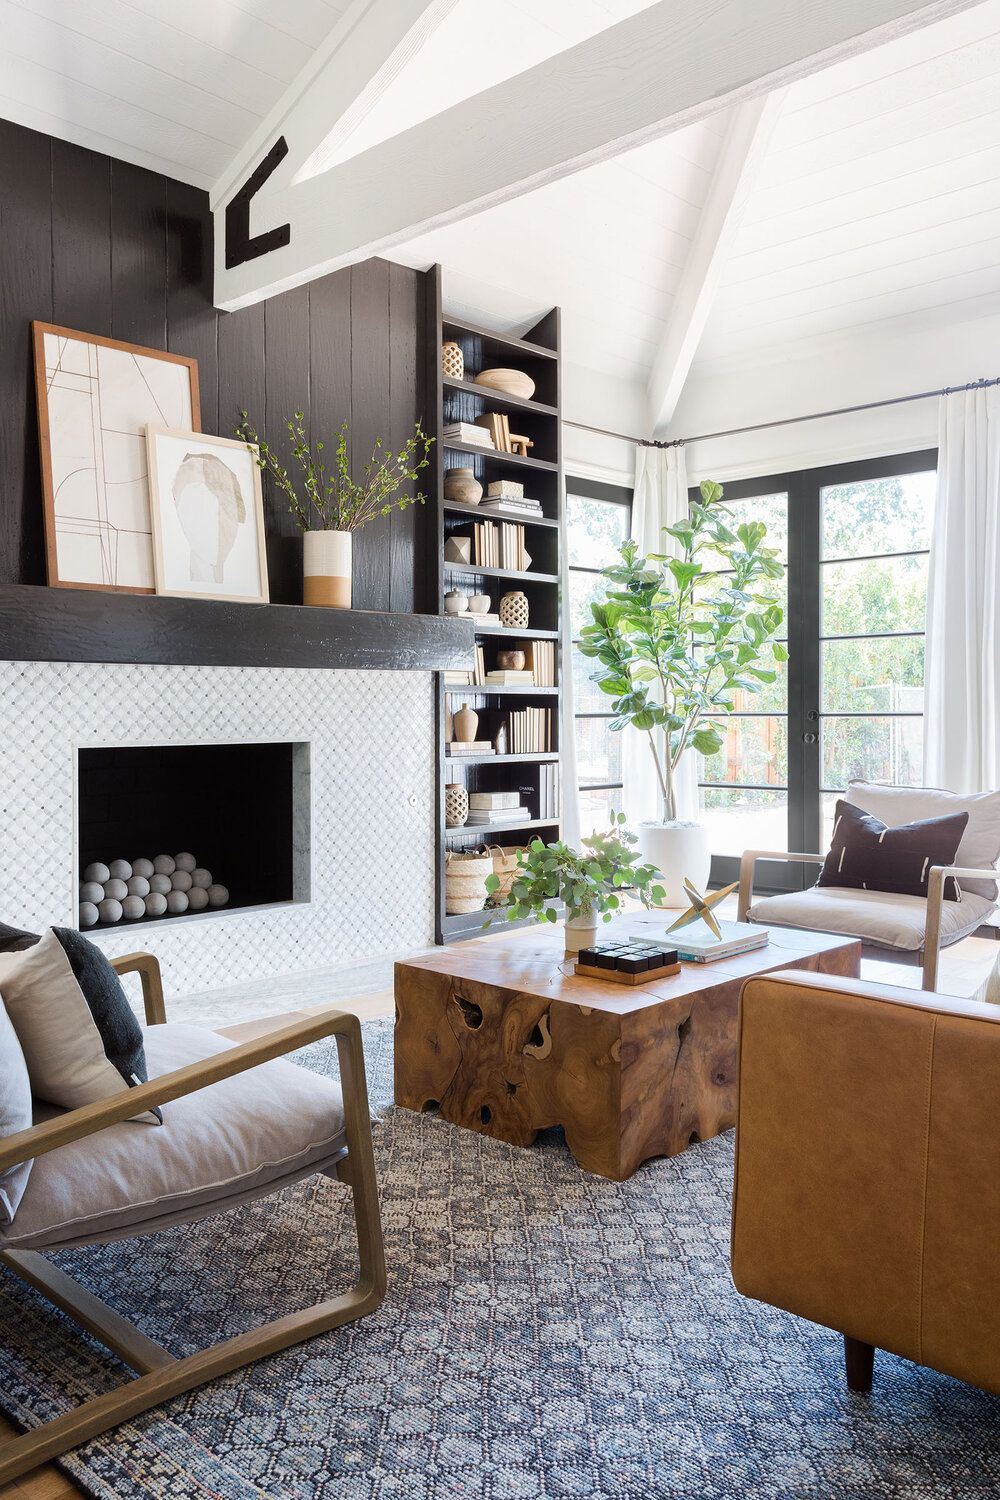 North Ranch — Lindsey Brooke Design (With images ...